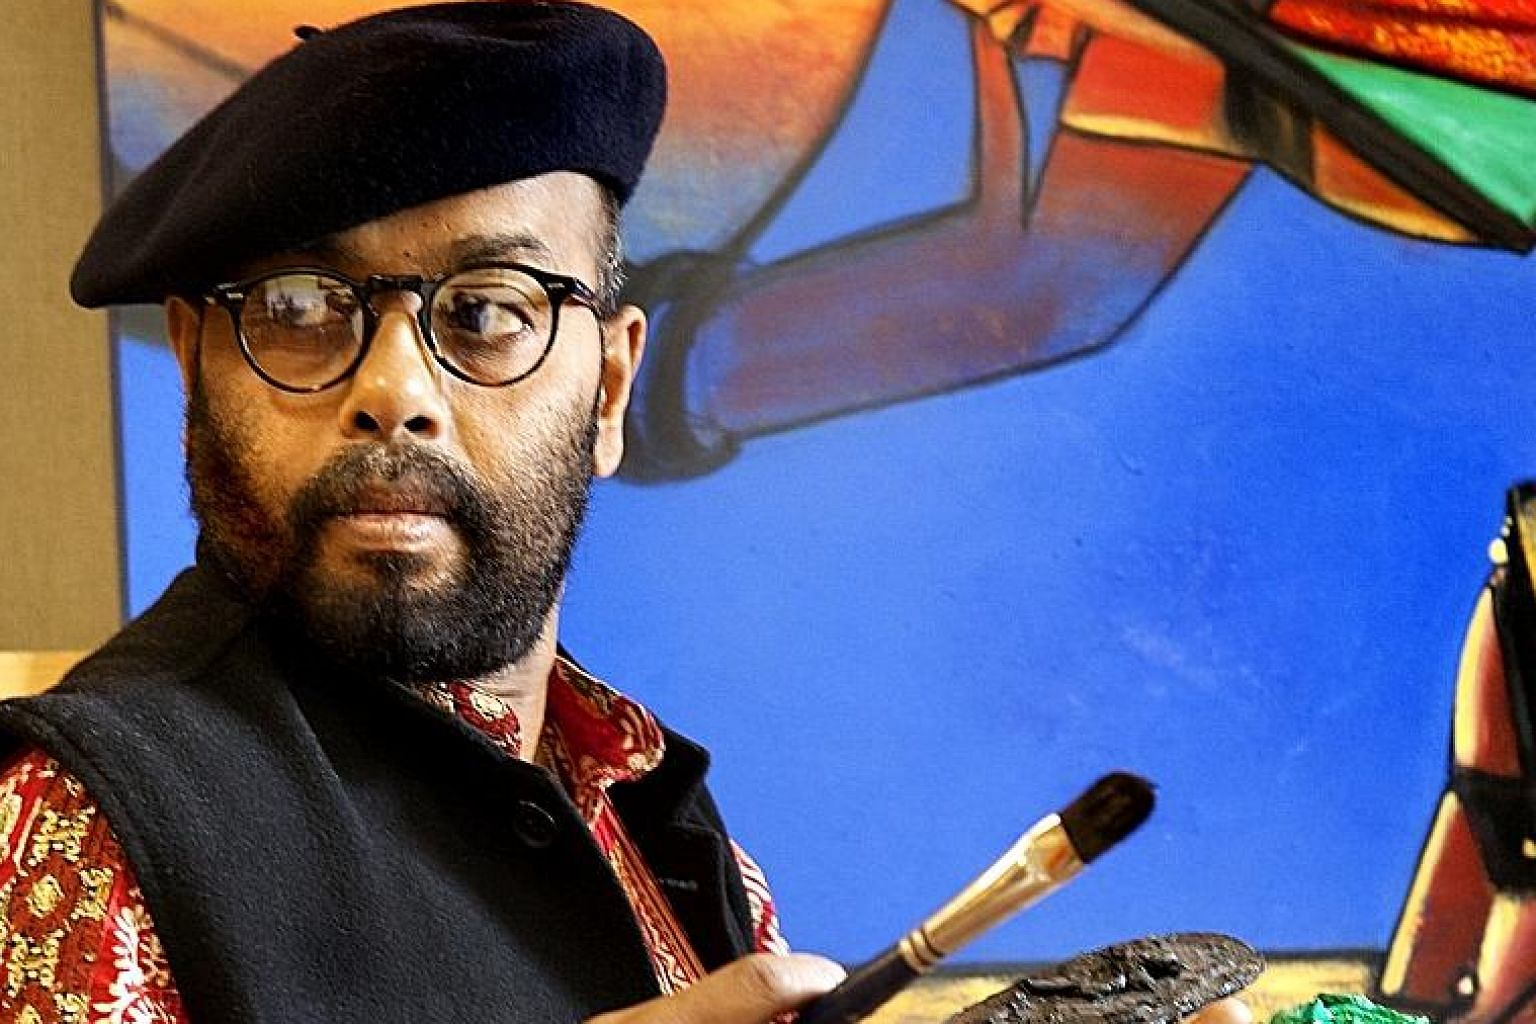 Paresh Maity, who likes to hear people's thoughts on his work, will mingle with fairgoers this weekend.